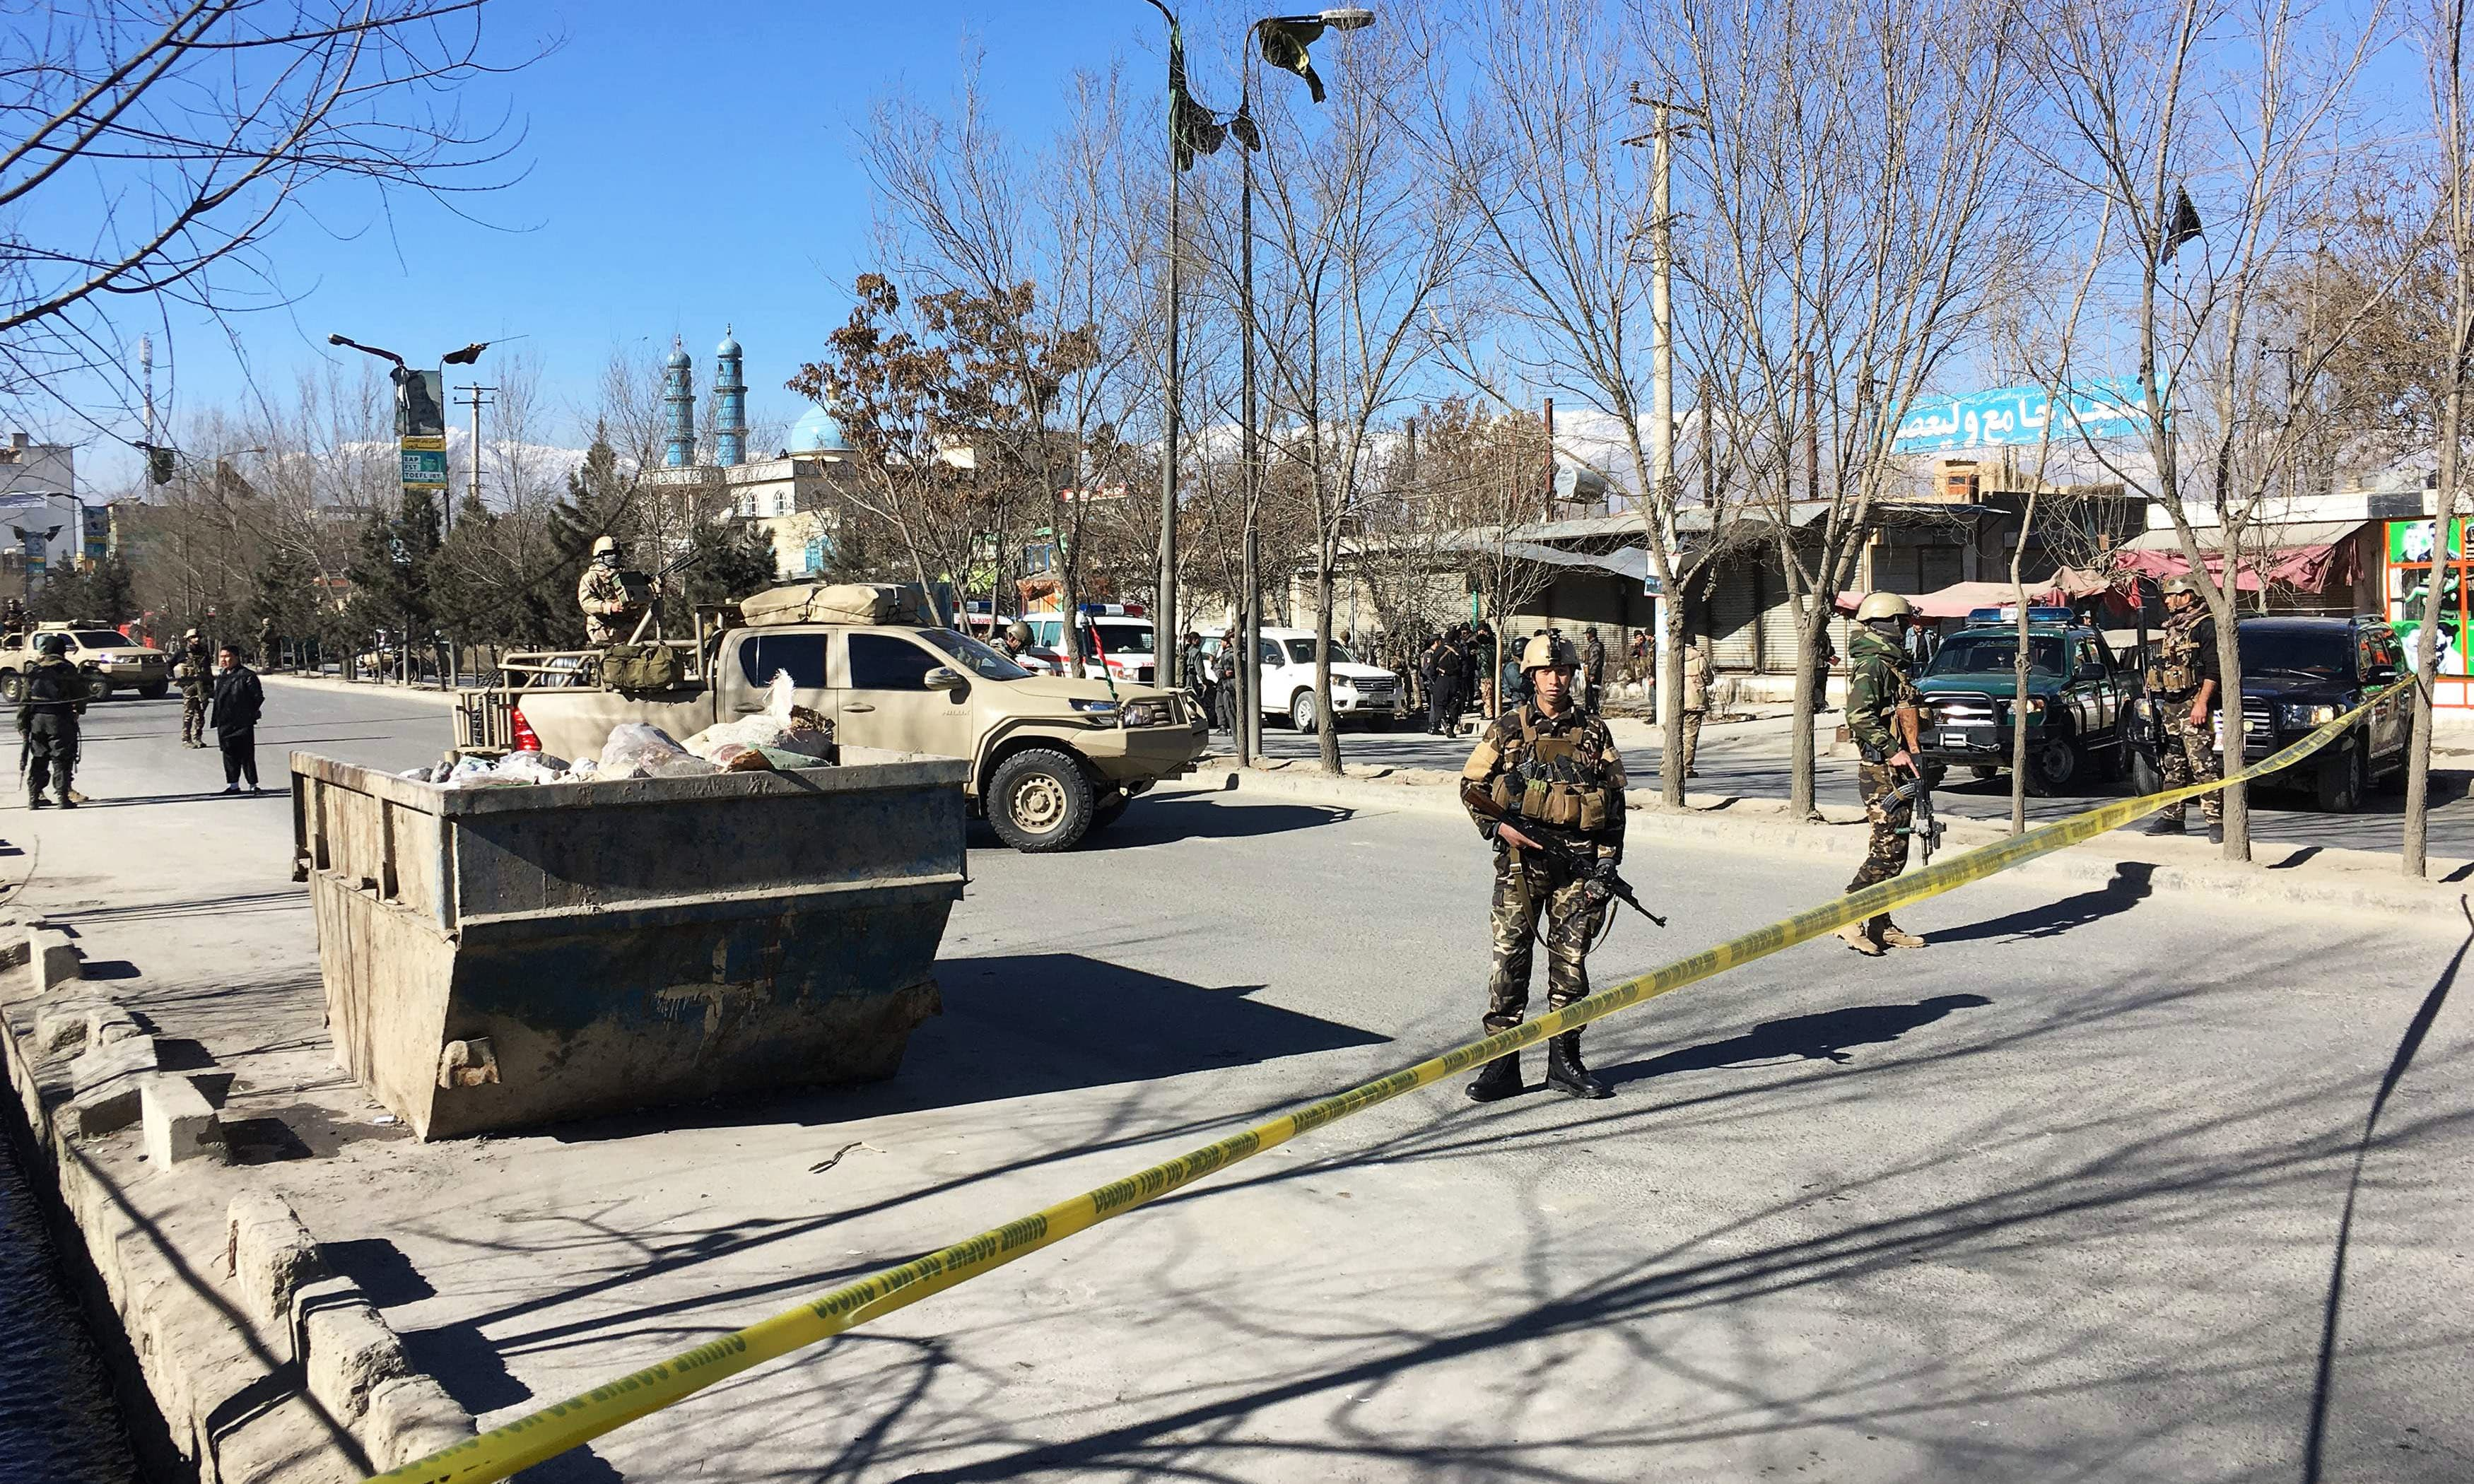 At least 40 killed in attack on cultural centre in Kabul